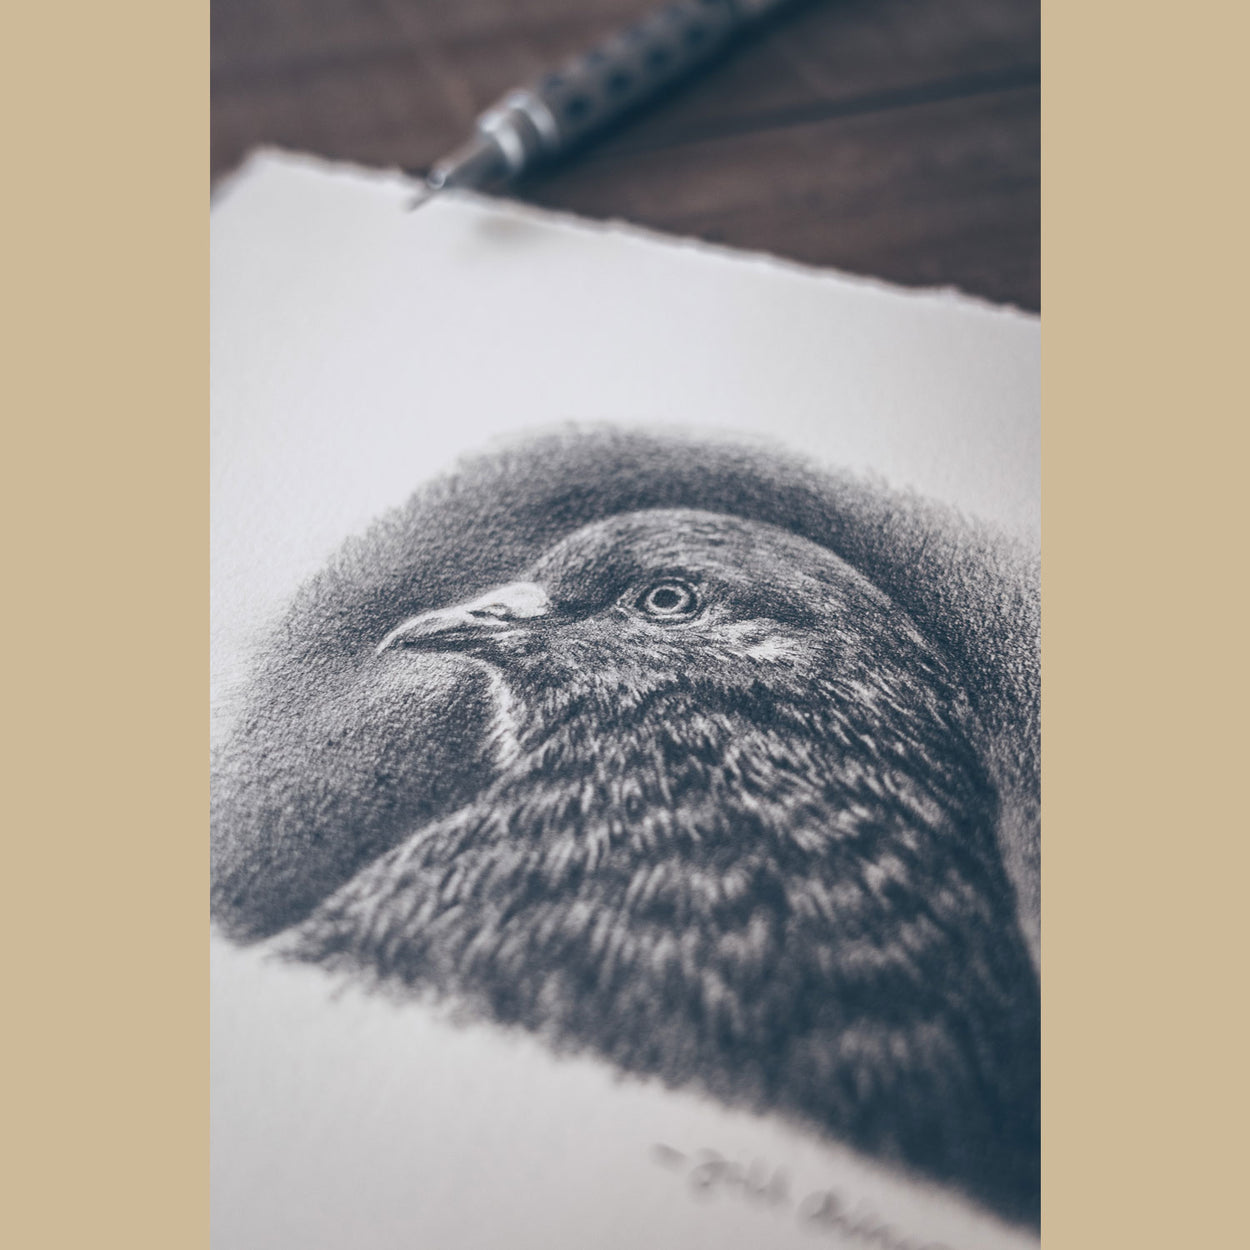 Pigeon Pencil Drawing - The Thriving Wild